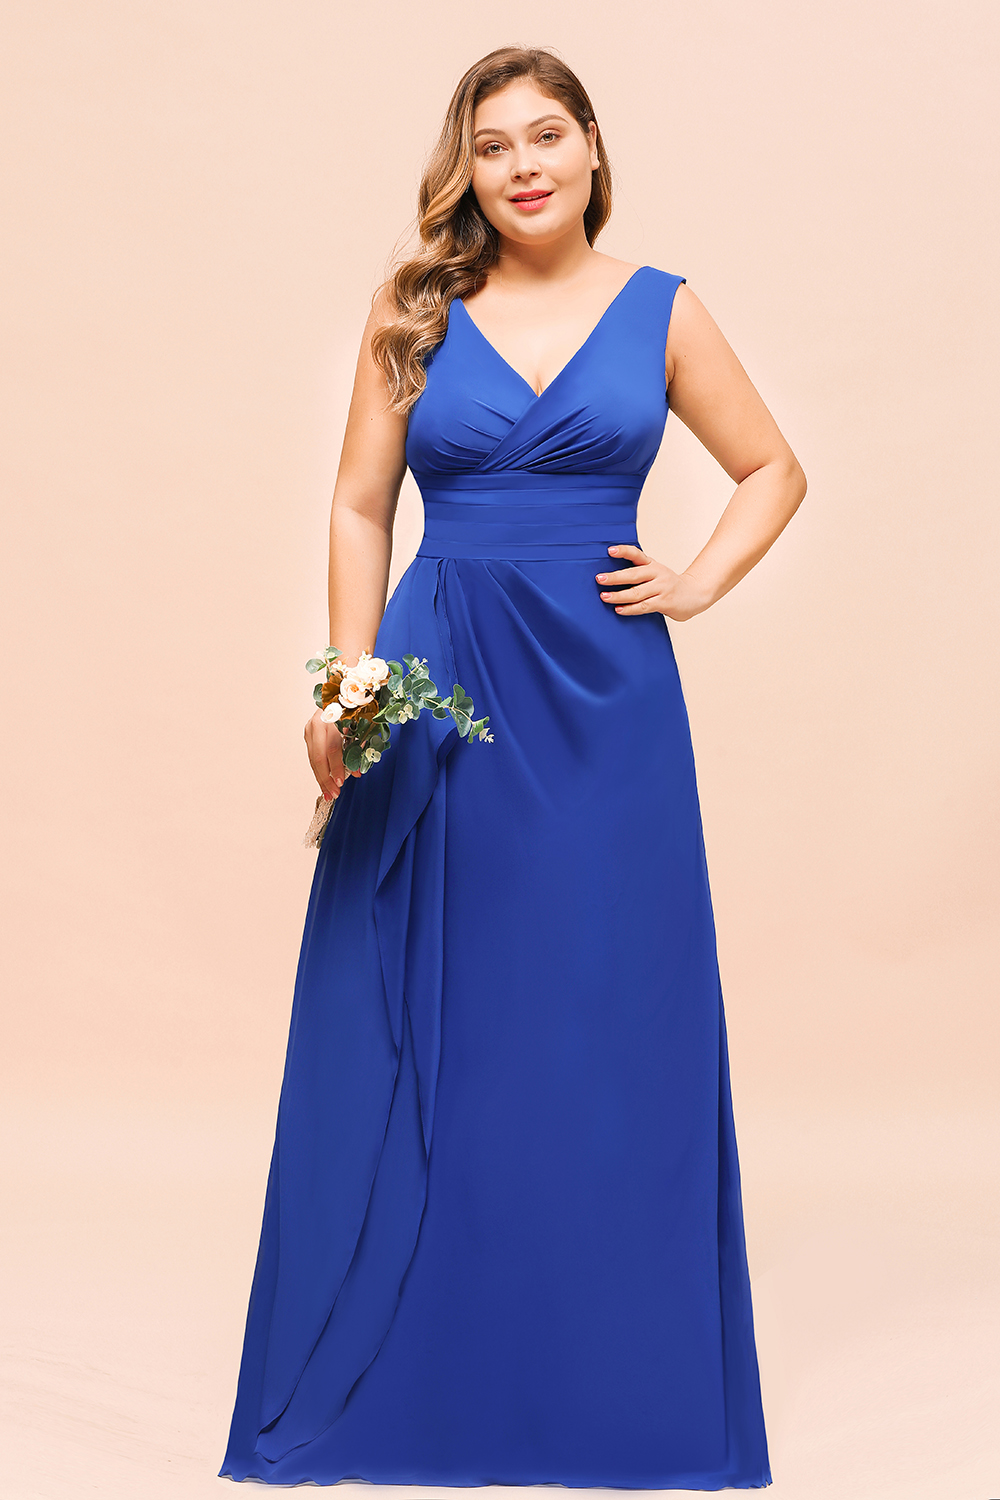 BMbridal Elegant V-Neck Sleeveless Chiffon Plus Size Bridesmaid Dress